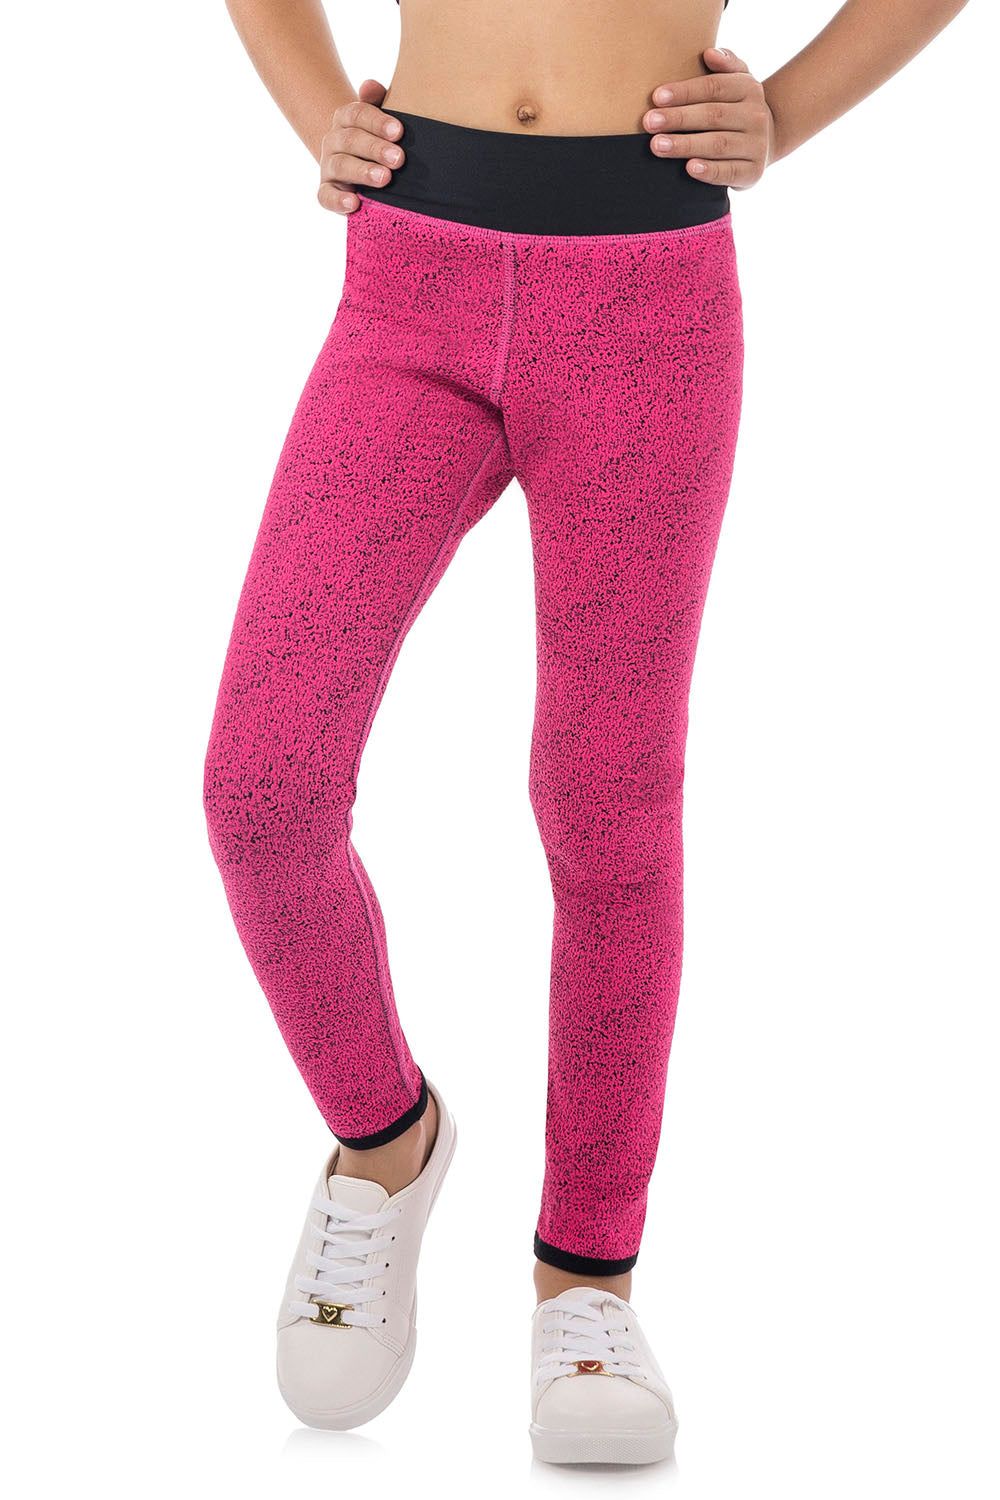 Surface Reversible Kids Legging